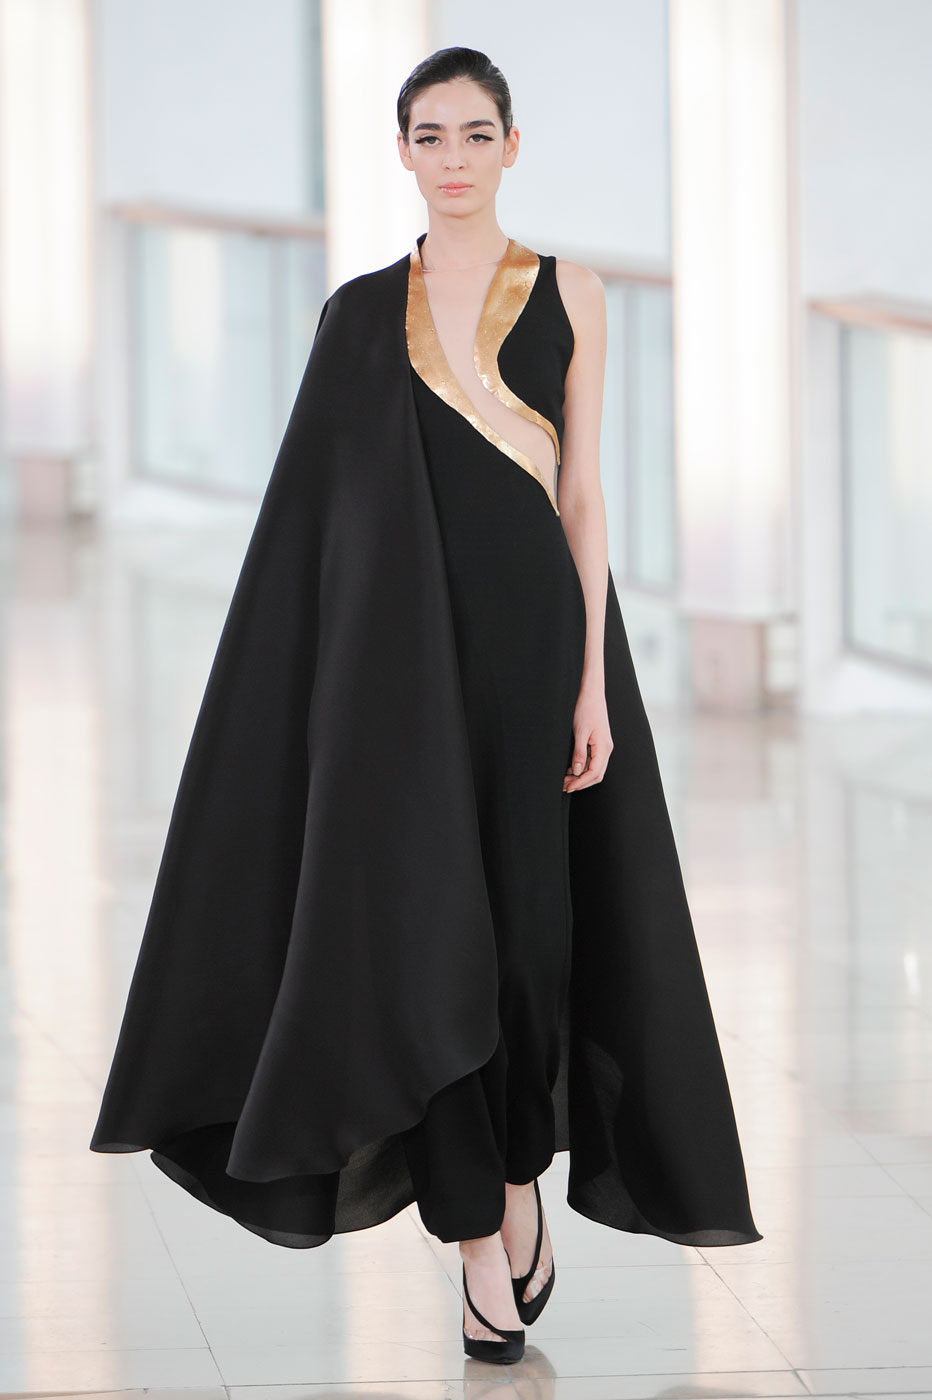 stephane-rolland-fashion-runway-show-haute-couture-paris-spring-2015-the-impression-41